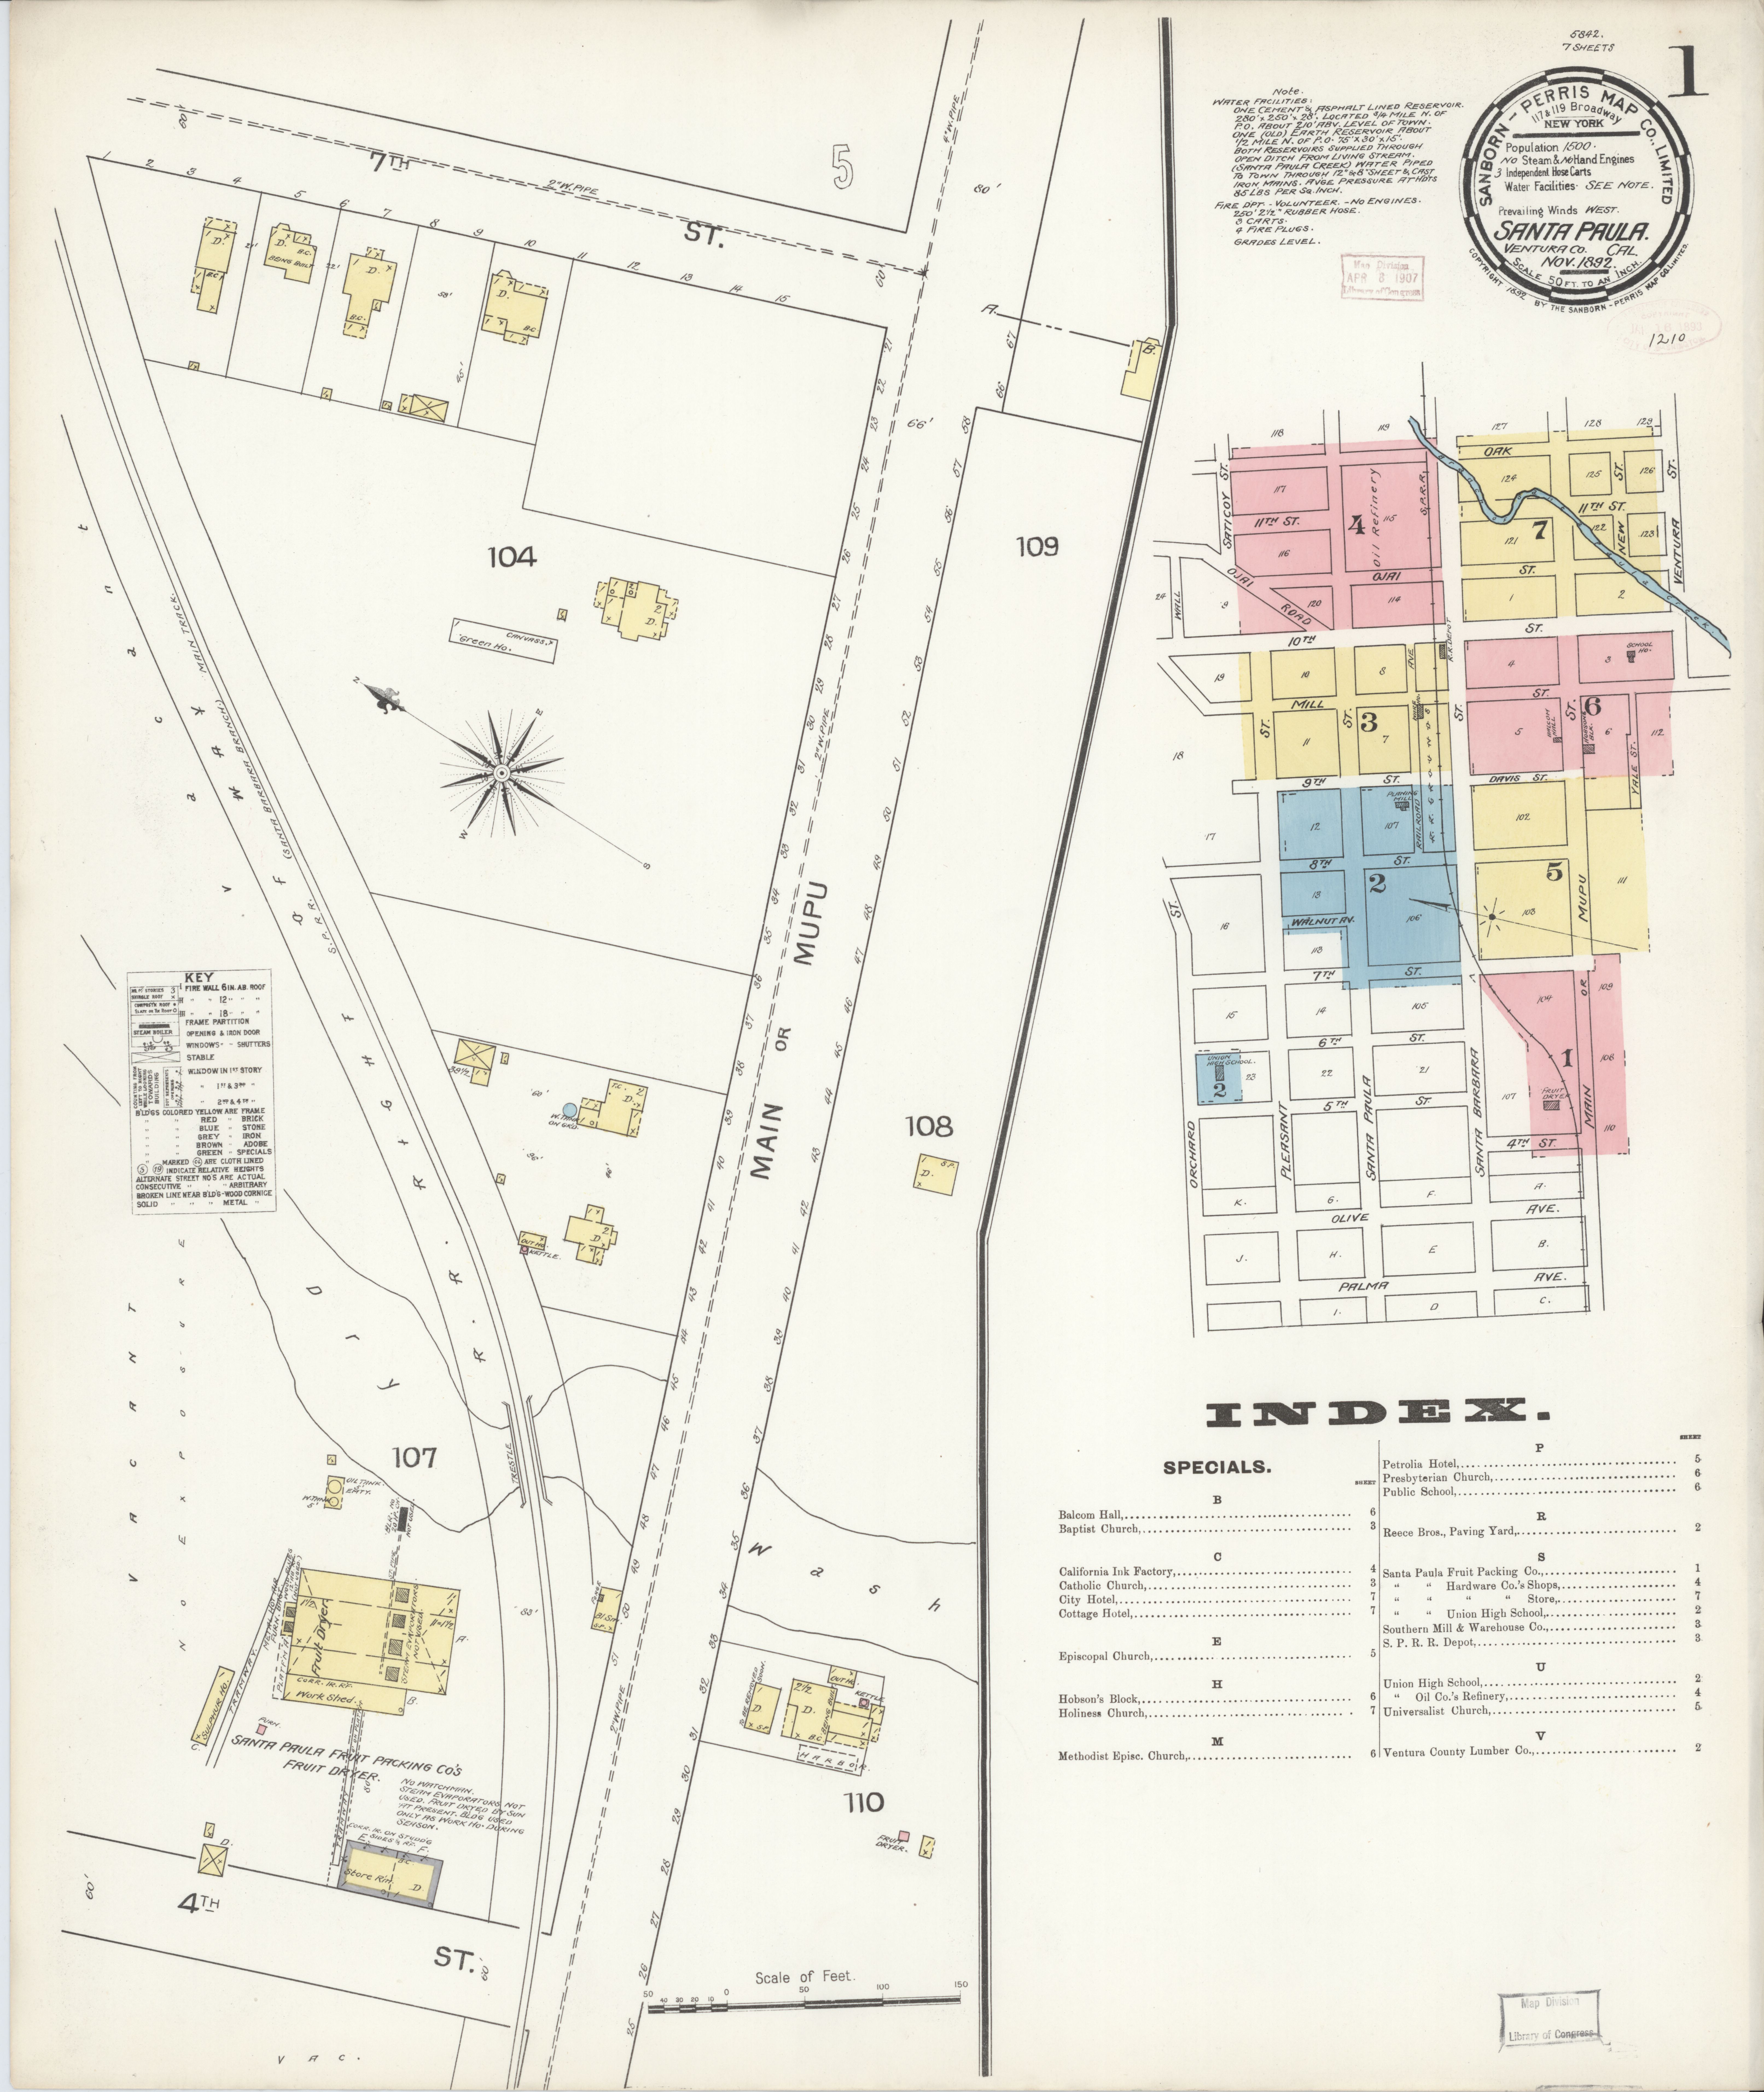 File:Sanborn Fire Insurance Map from Santa Paula, Ventura ... on ventura county cities, san francisco street map, downey street map, suffolk county street map, ventura county festivals, ventura restaurant map, ventura county information, orange street map, ventura county home, cerritos street map, palmdale street map, meade county street map, ventura county parcel maps, putnam county street map, santa cruz county street map, los angeles orange county map, placer county street map, madera county street map, national city street map, ventura ca map,